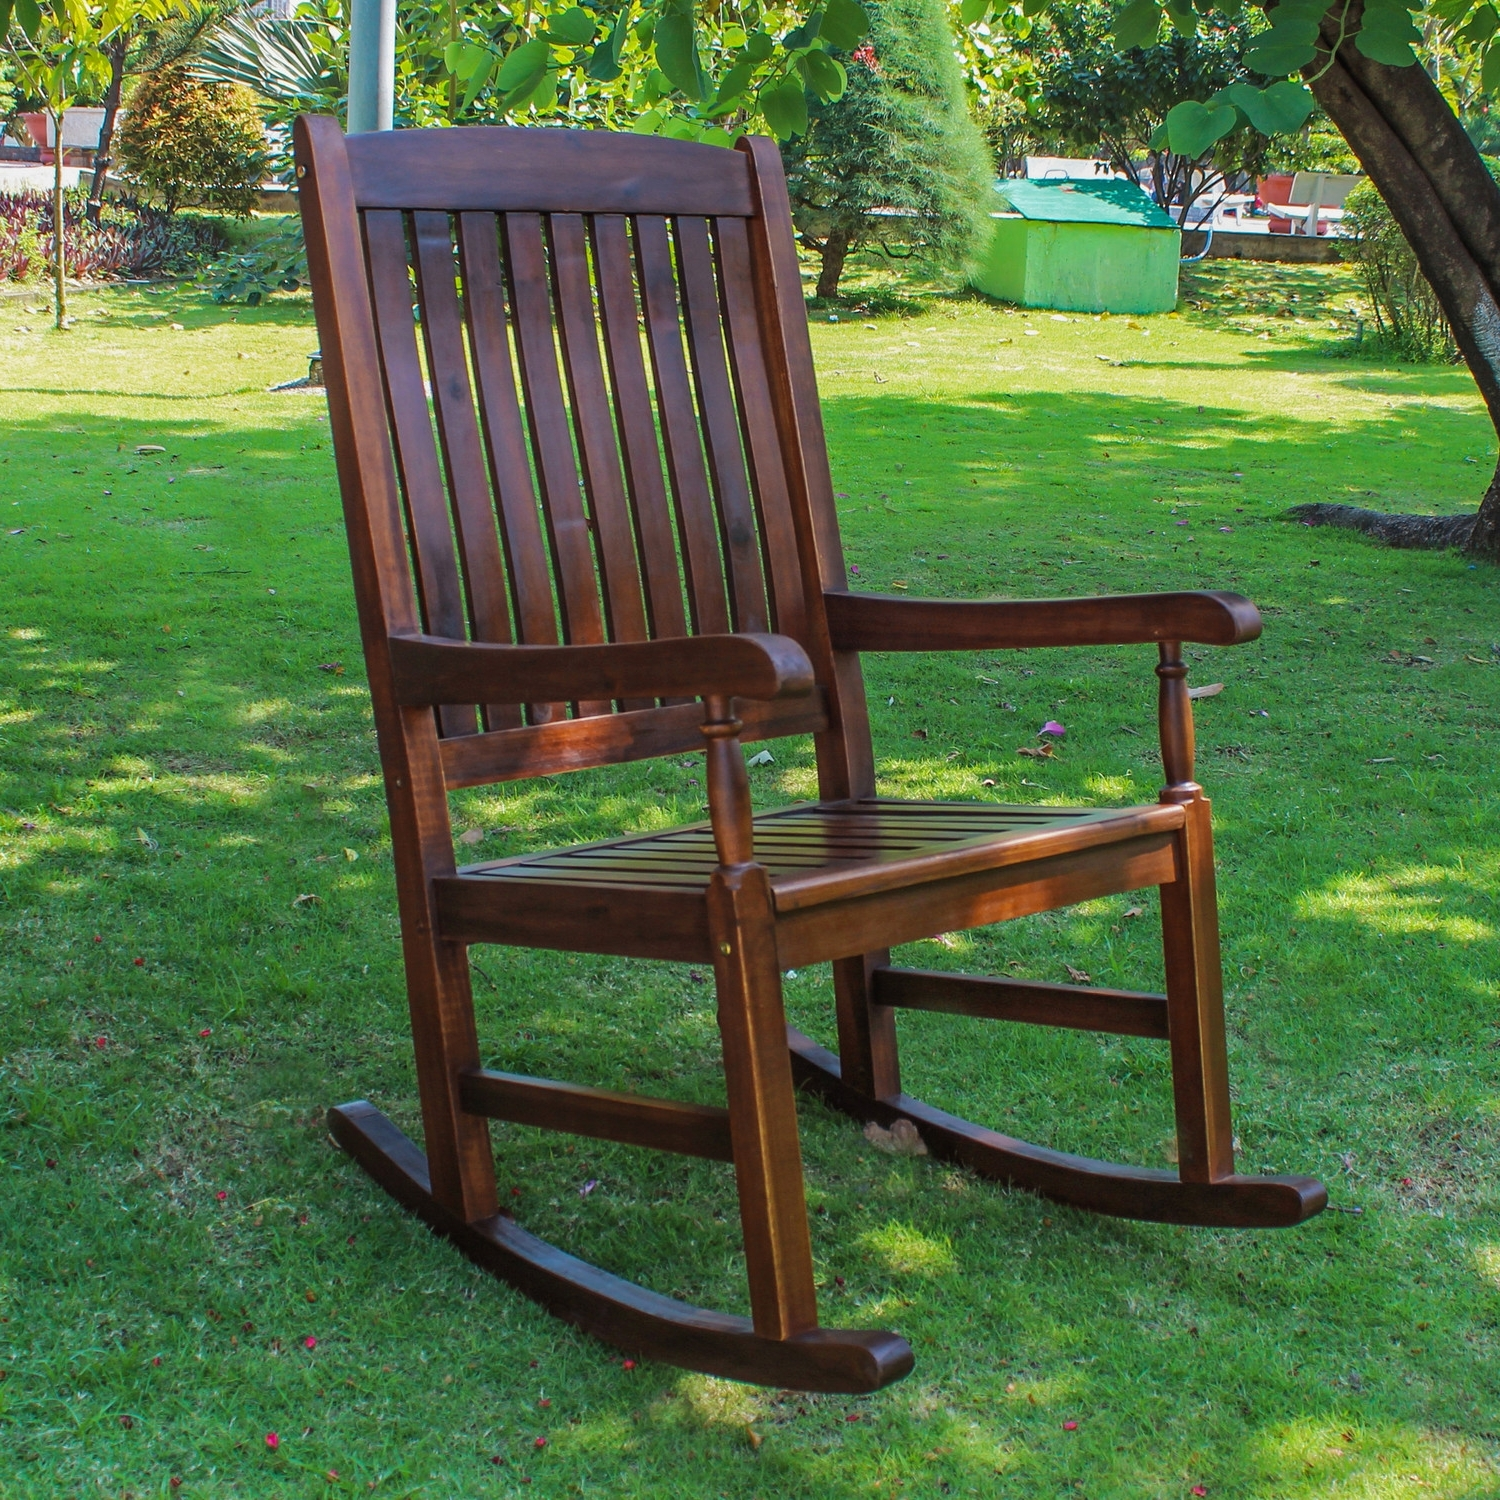 Preferred Garden & Patio Furniture : Wooden Outdoor Rocking Chairs Wooden Within Rocking Chairs For Garden (View 15 of 20)